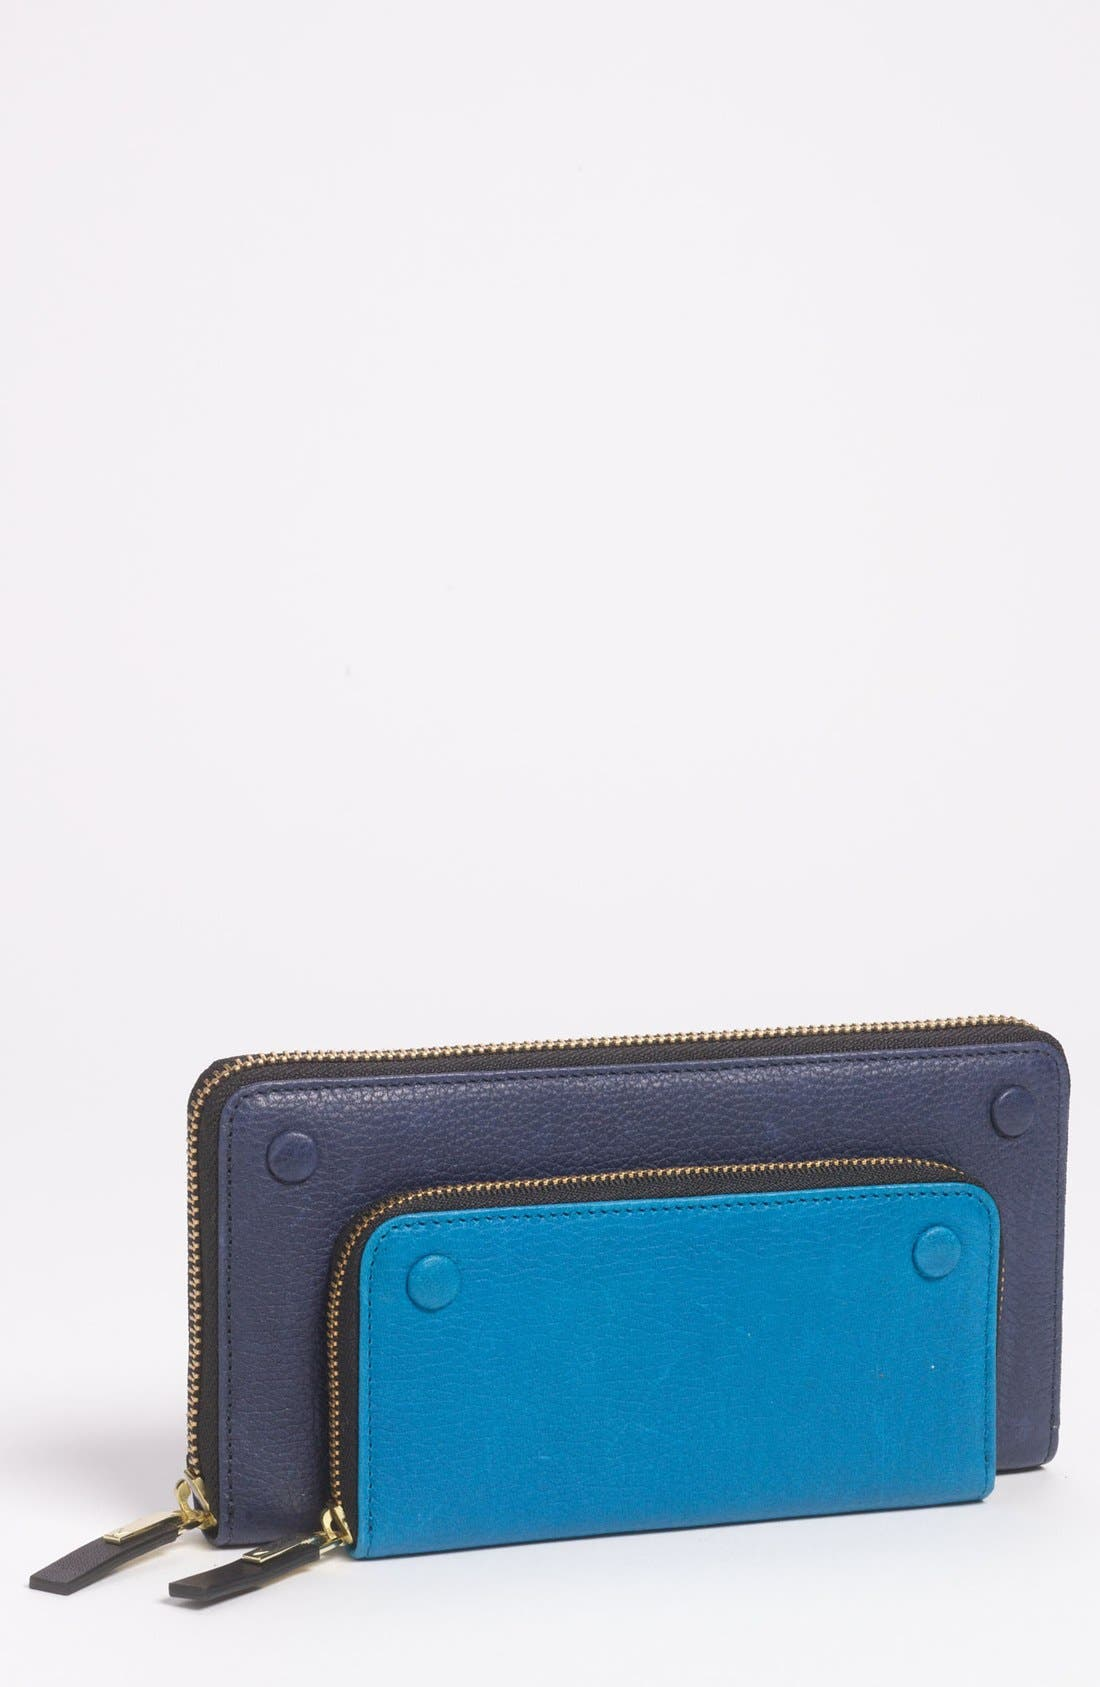 Main Image - Vince Camuto 'Mikey' Zip Around Wallet